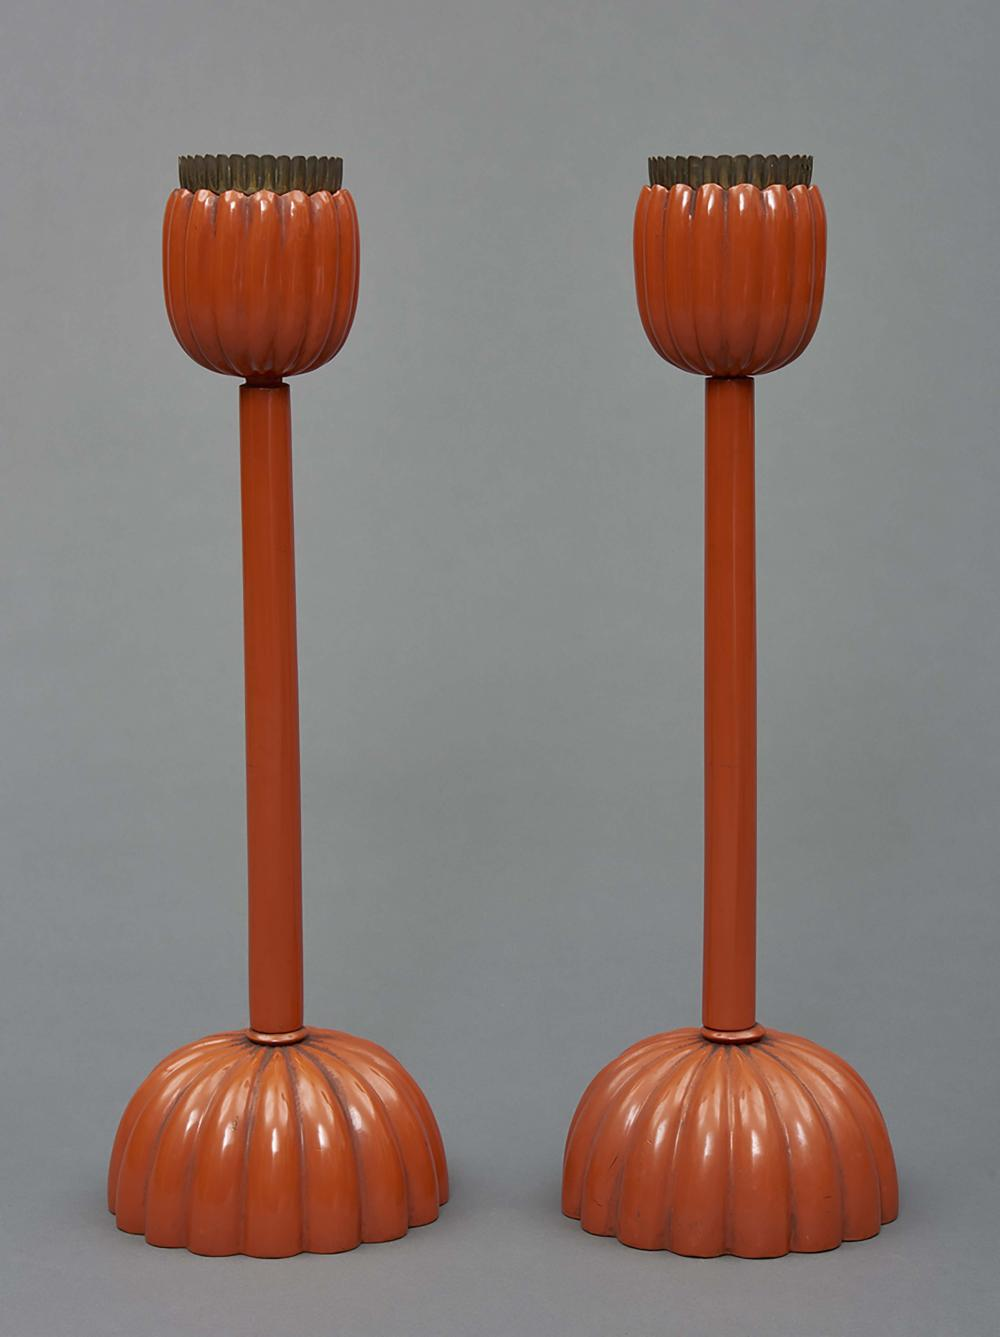 A pair of orange-red lacquered candlesticks with a chrysanthemum foot, used